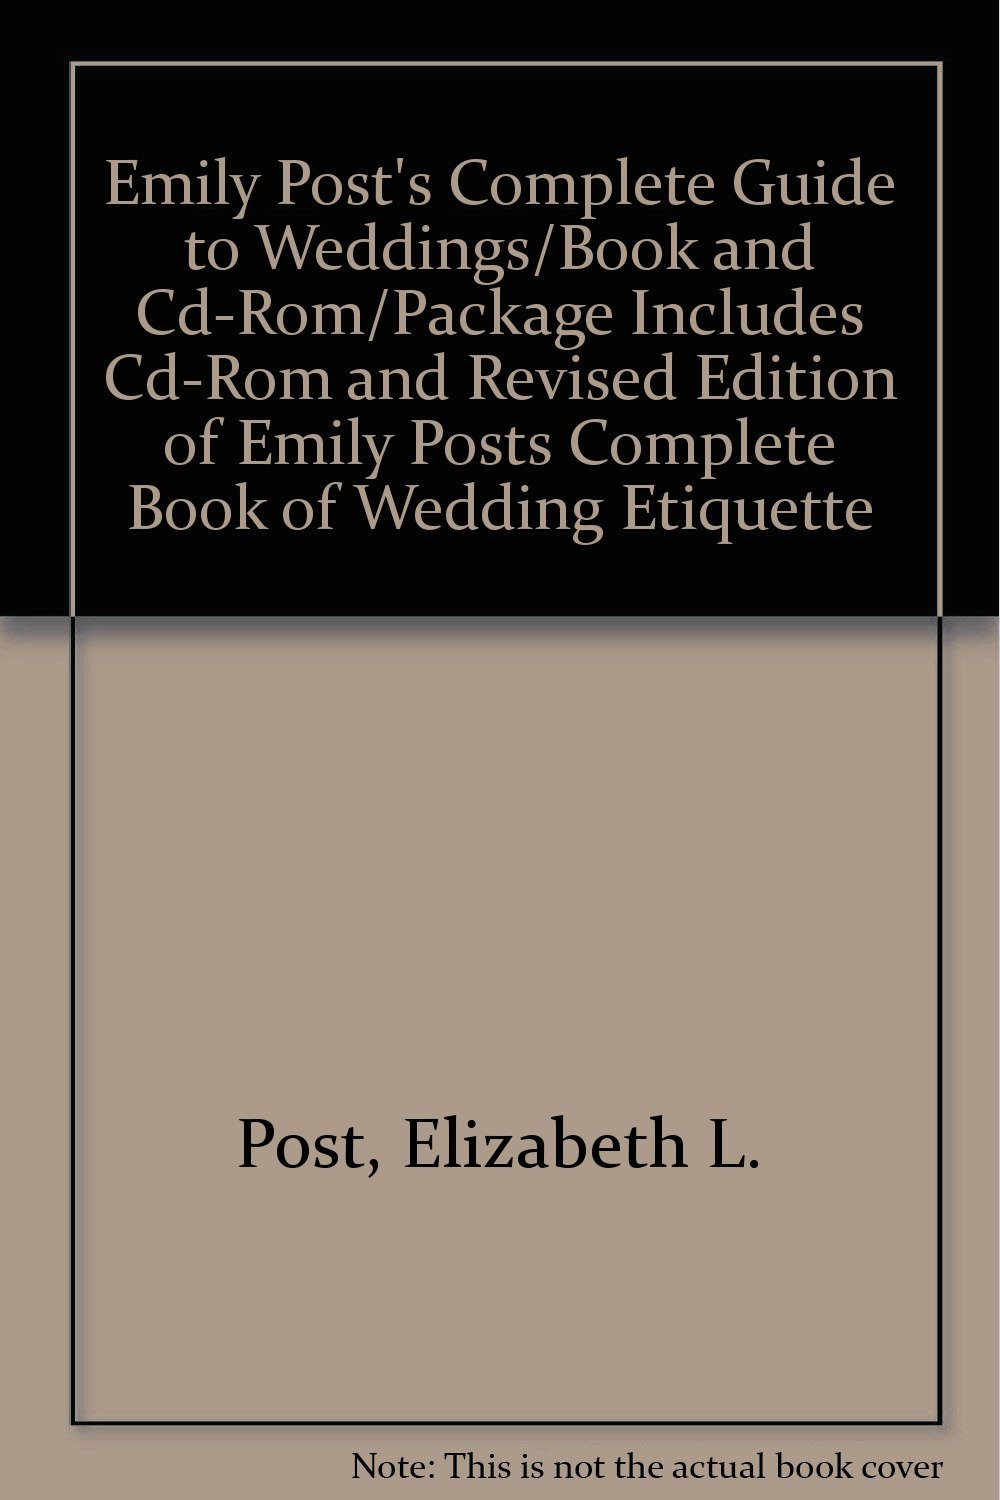 Emily Post's Complete Guide to Weddings/Book and Cd-Rom/Package Includes Cd-Rom and Revised Edition of Emily Posts Complete Book of Wedding Etiquette